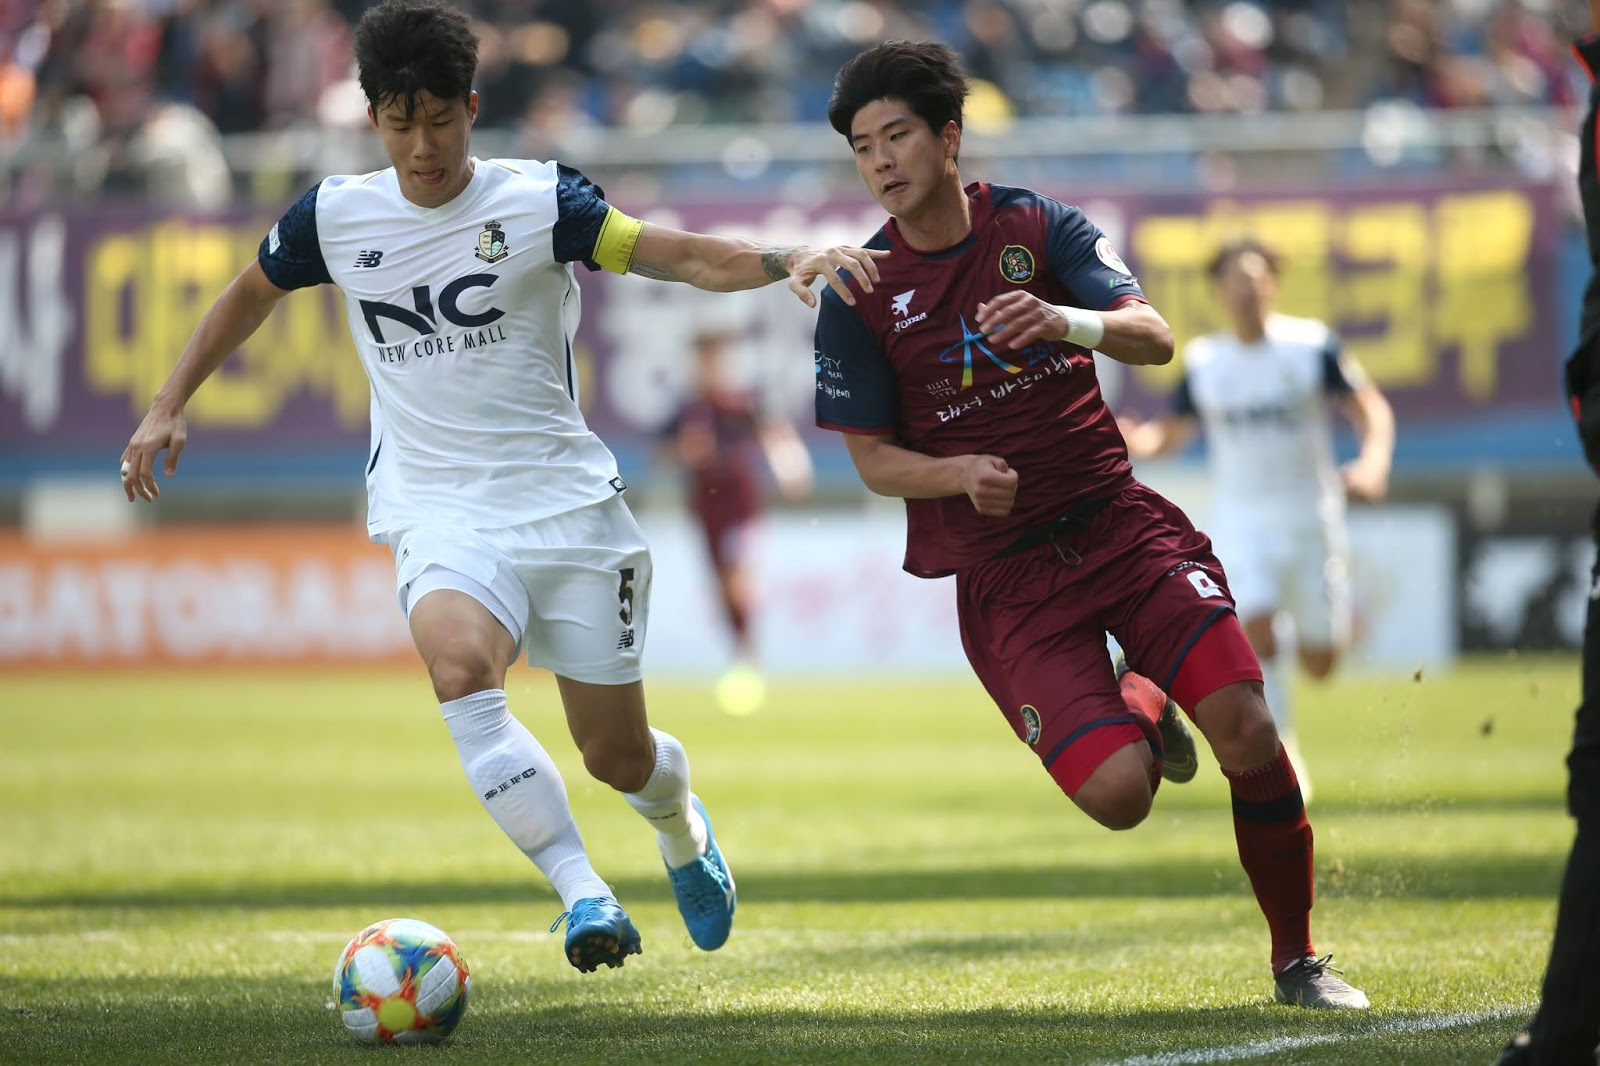 Ahn Ji-ho was prolific at keeping Daejeon at bay in round 3 of the K League 2, can Seoul E-Land get yet another clean sheet in the FA Cup?